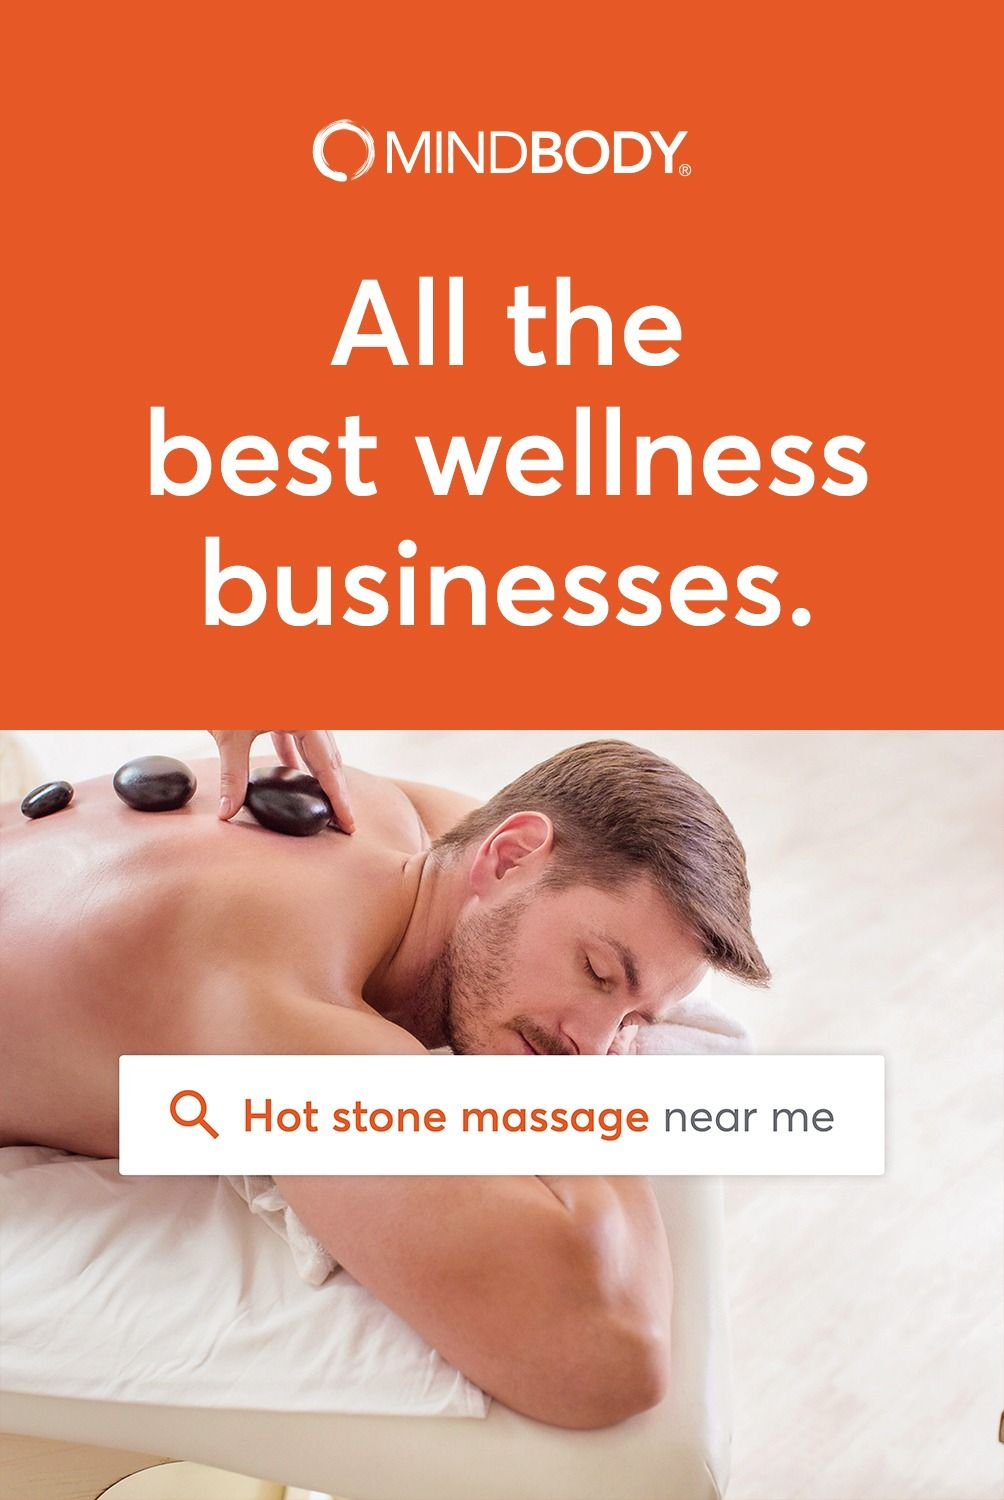 Ready to list your spa on the MINDBODY app? With your